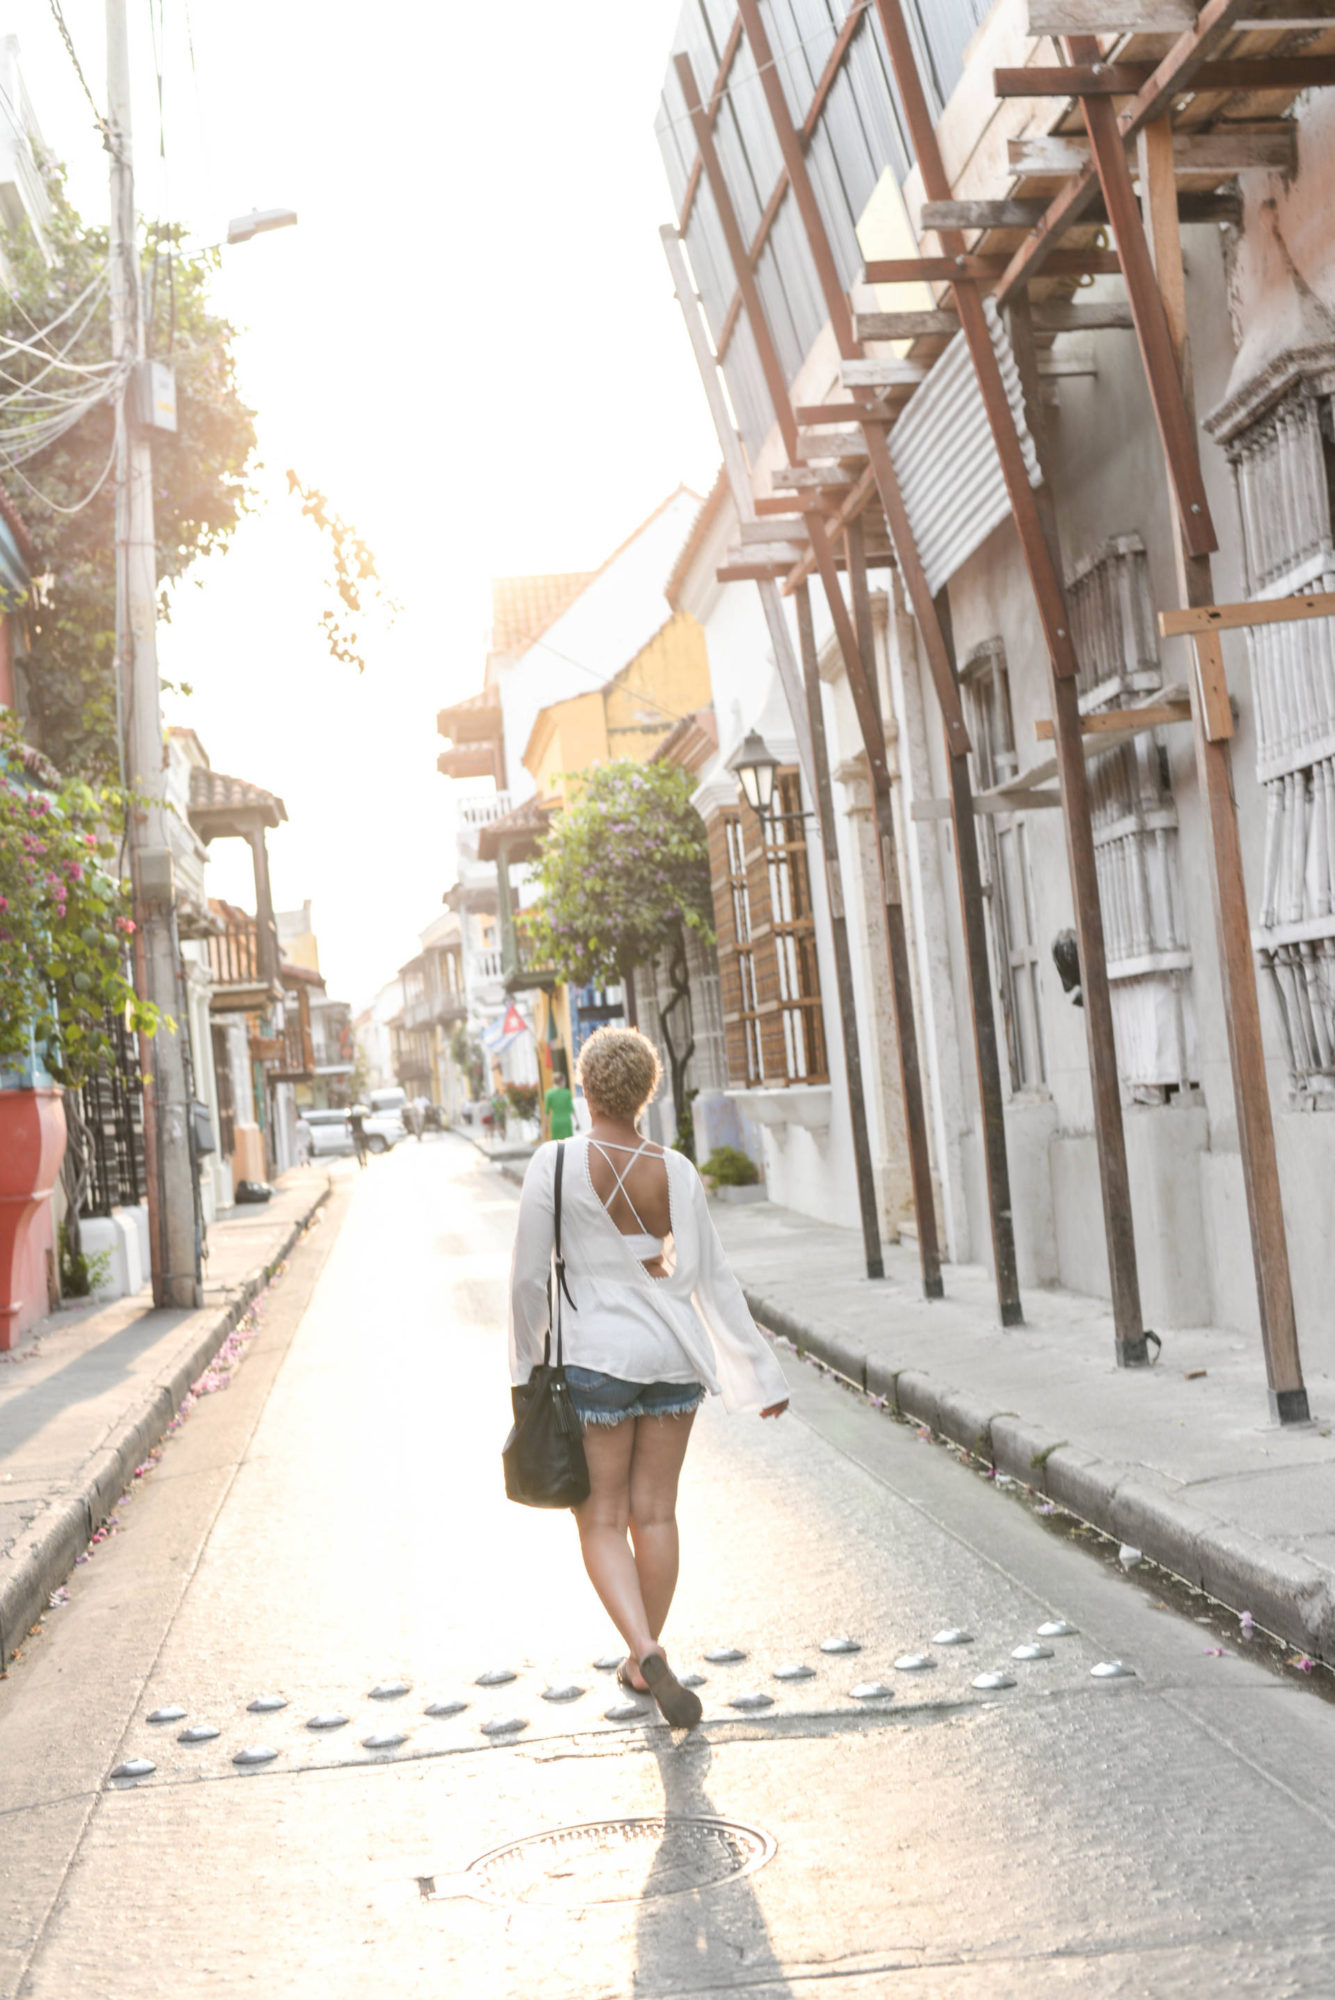 Cartagena Travel Diary!